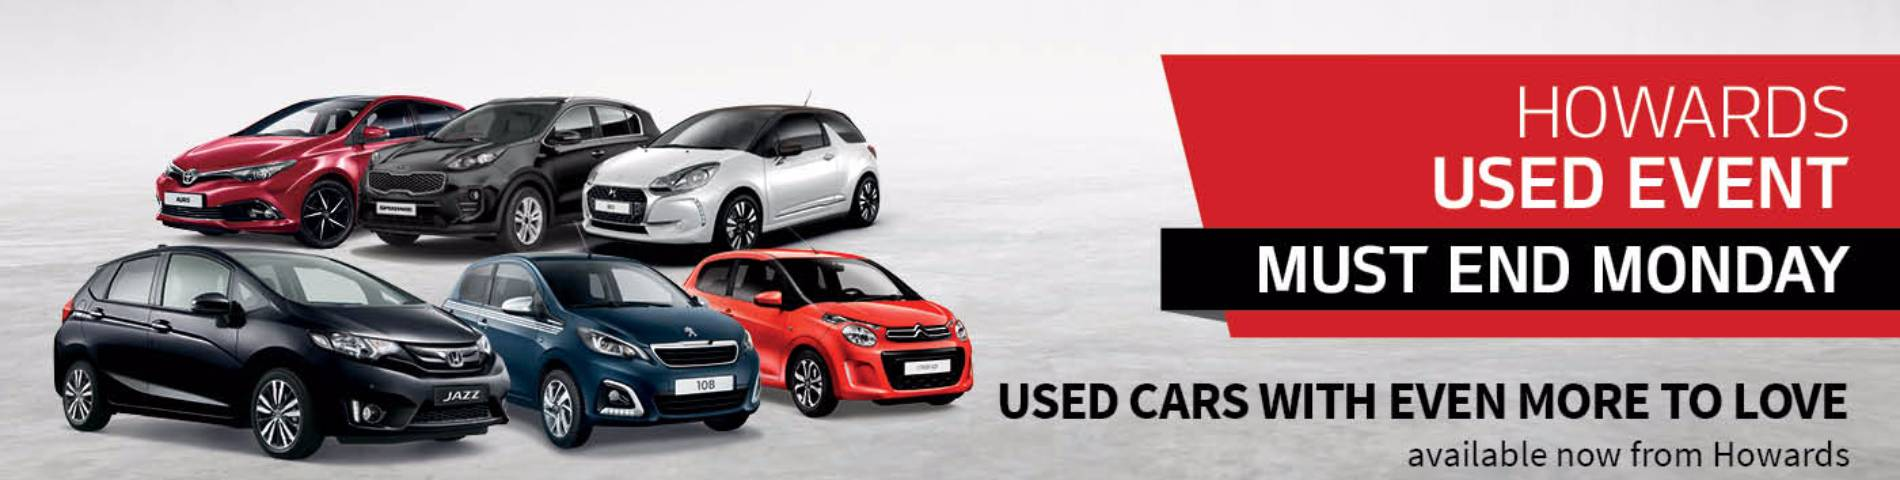 Used Car Banner Landing page